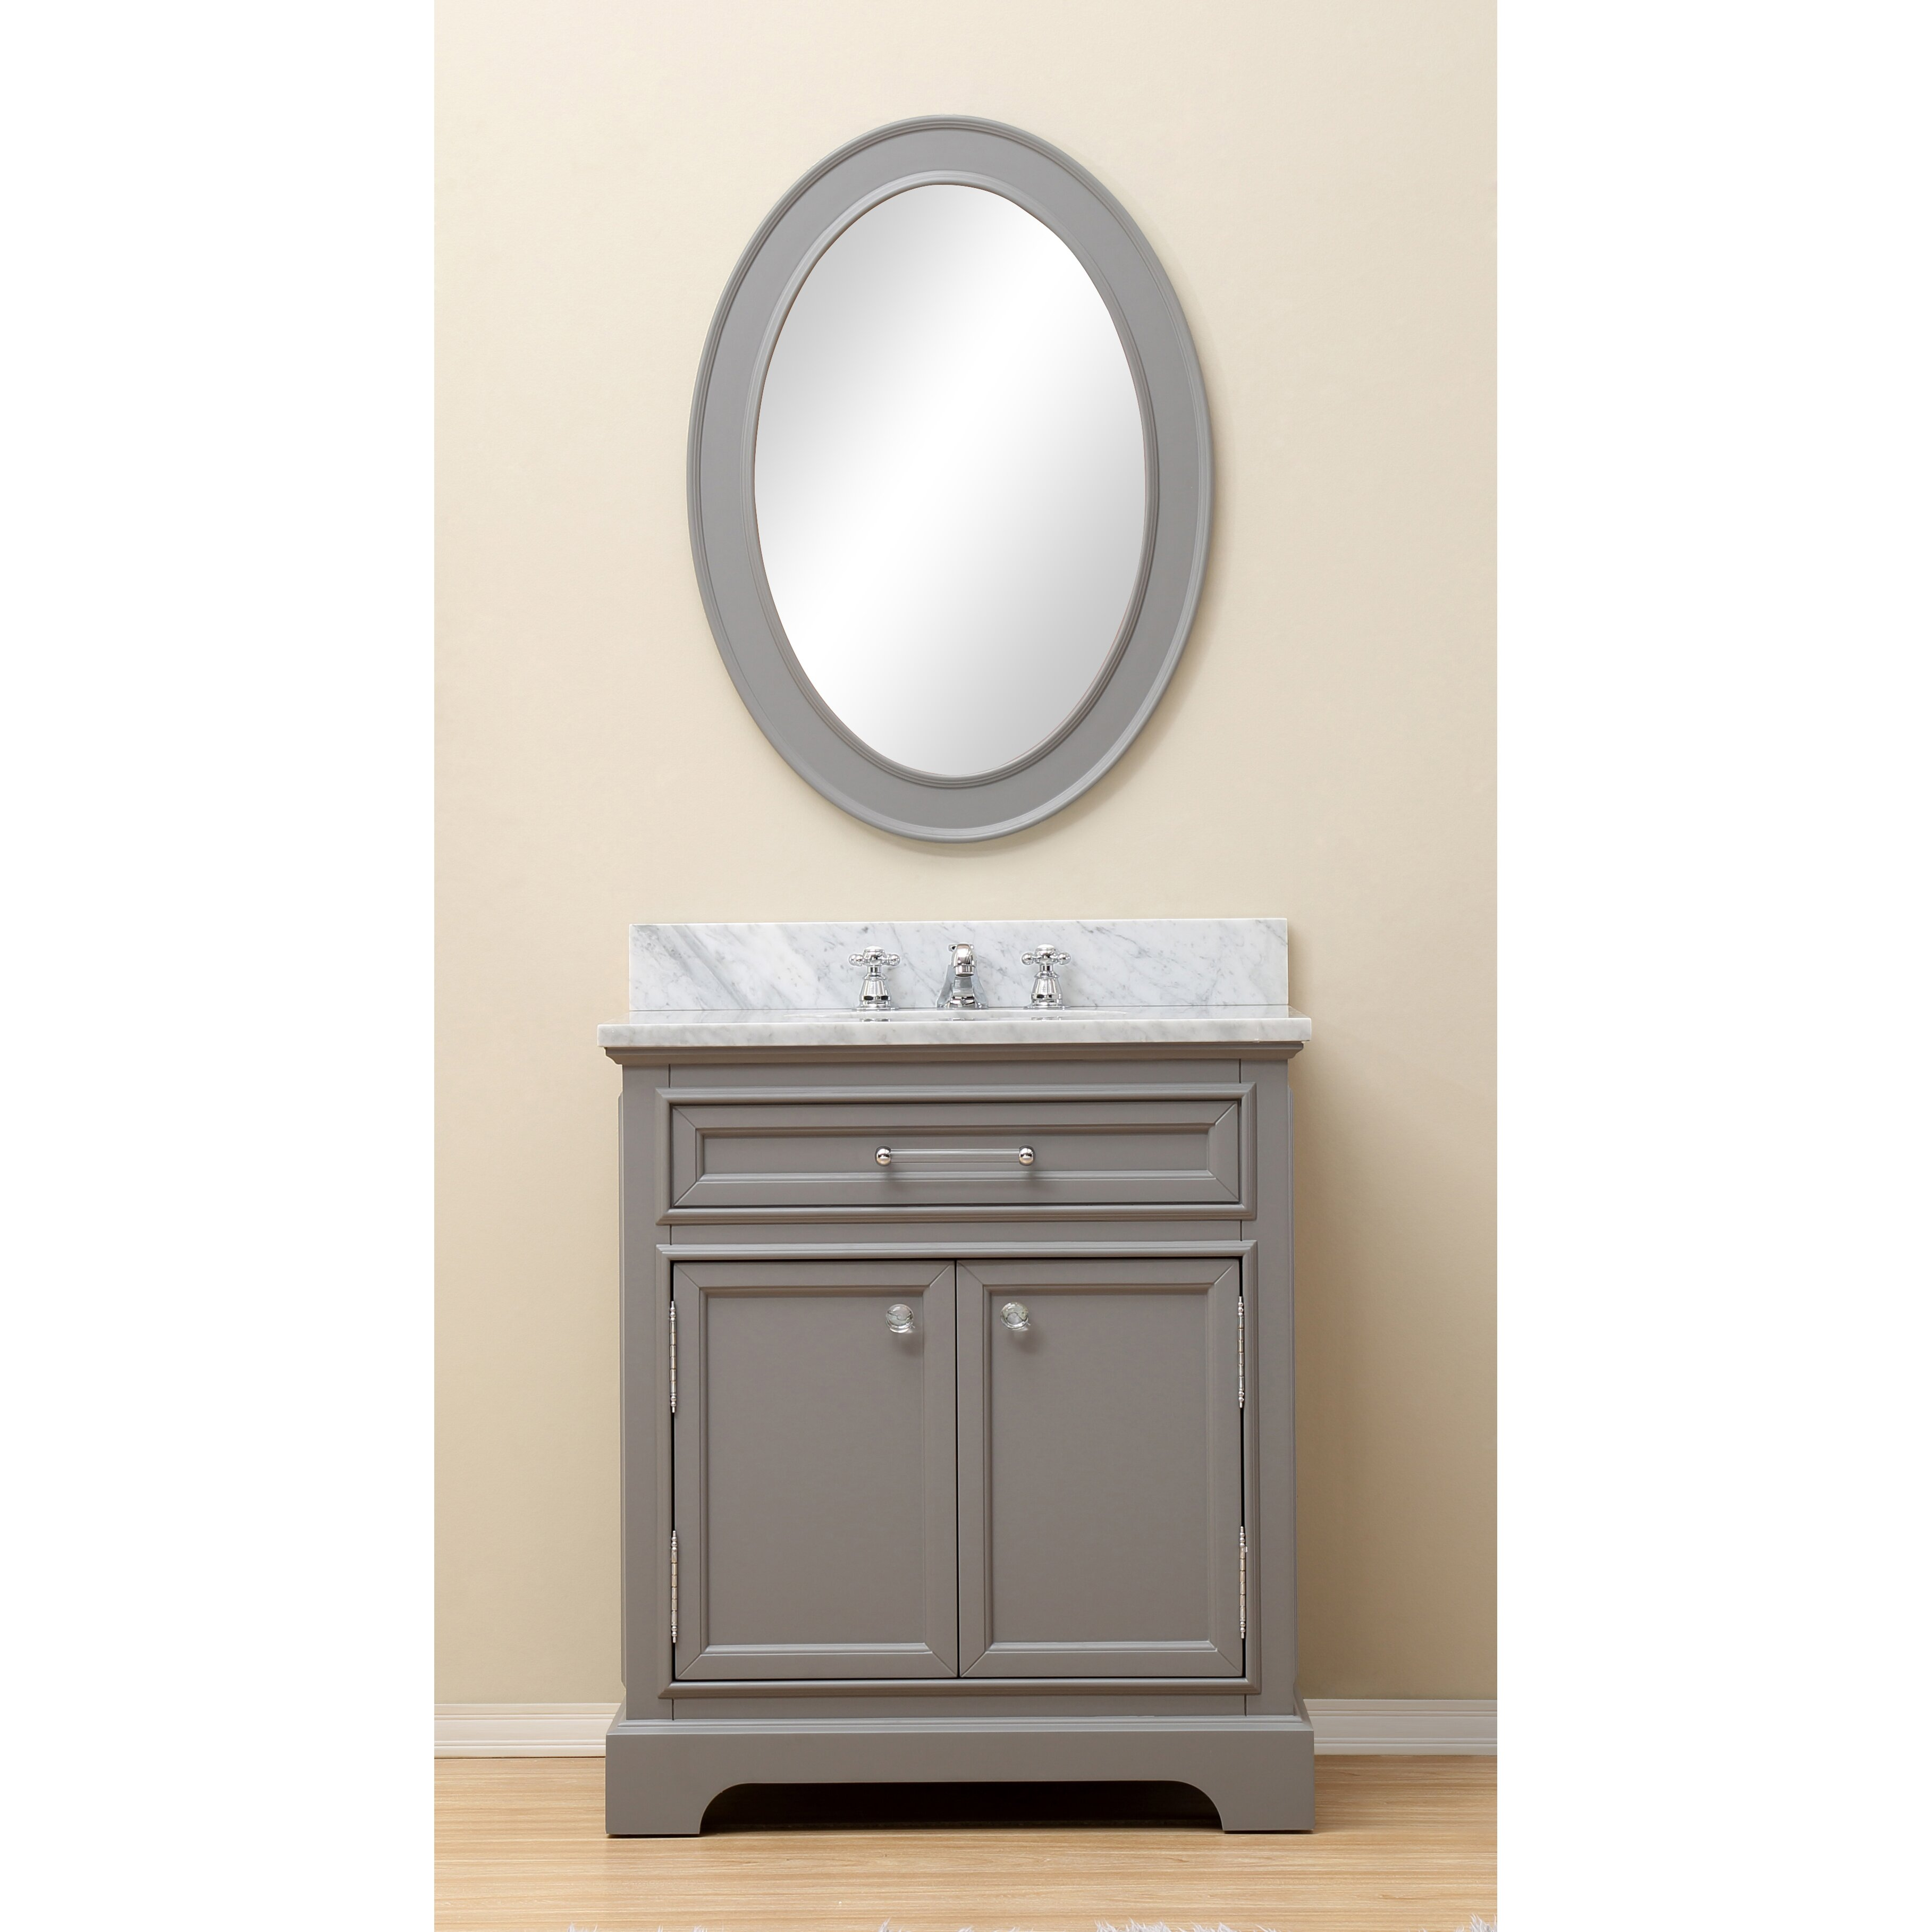 30 single sink bathroom vanity set with mirror and faucet grey by